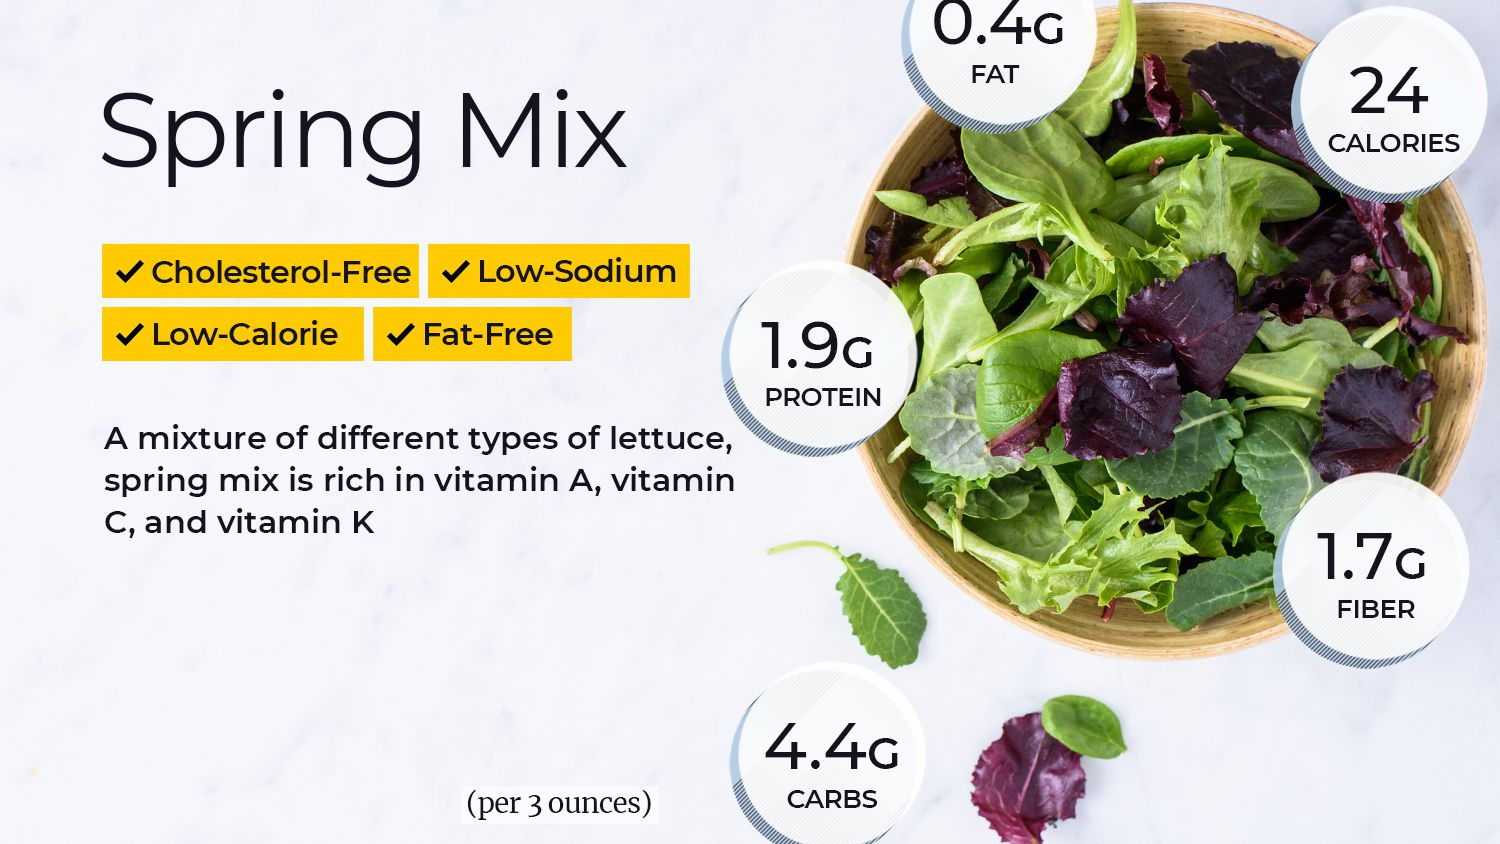 Spring Mix Nutrition Facts And Health Benefits